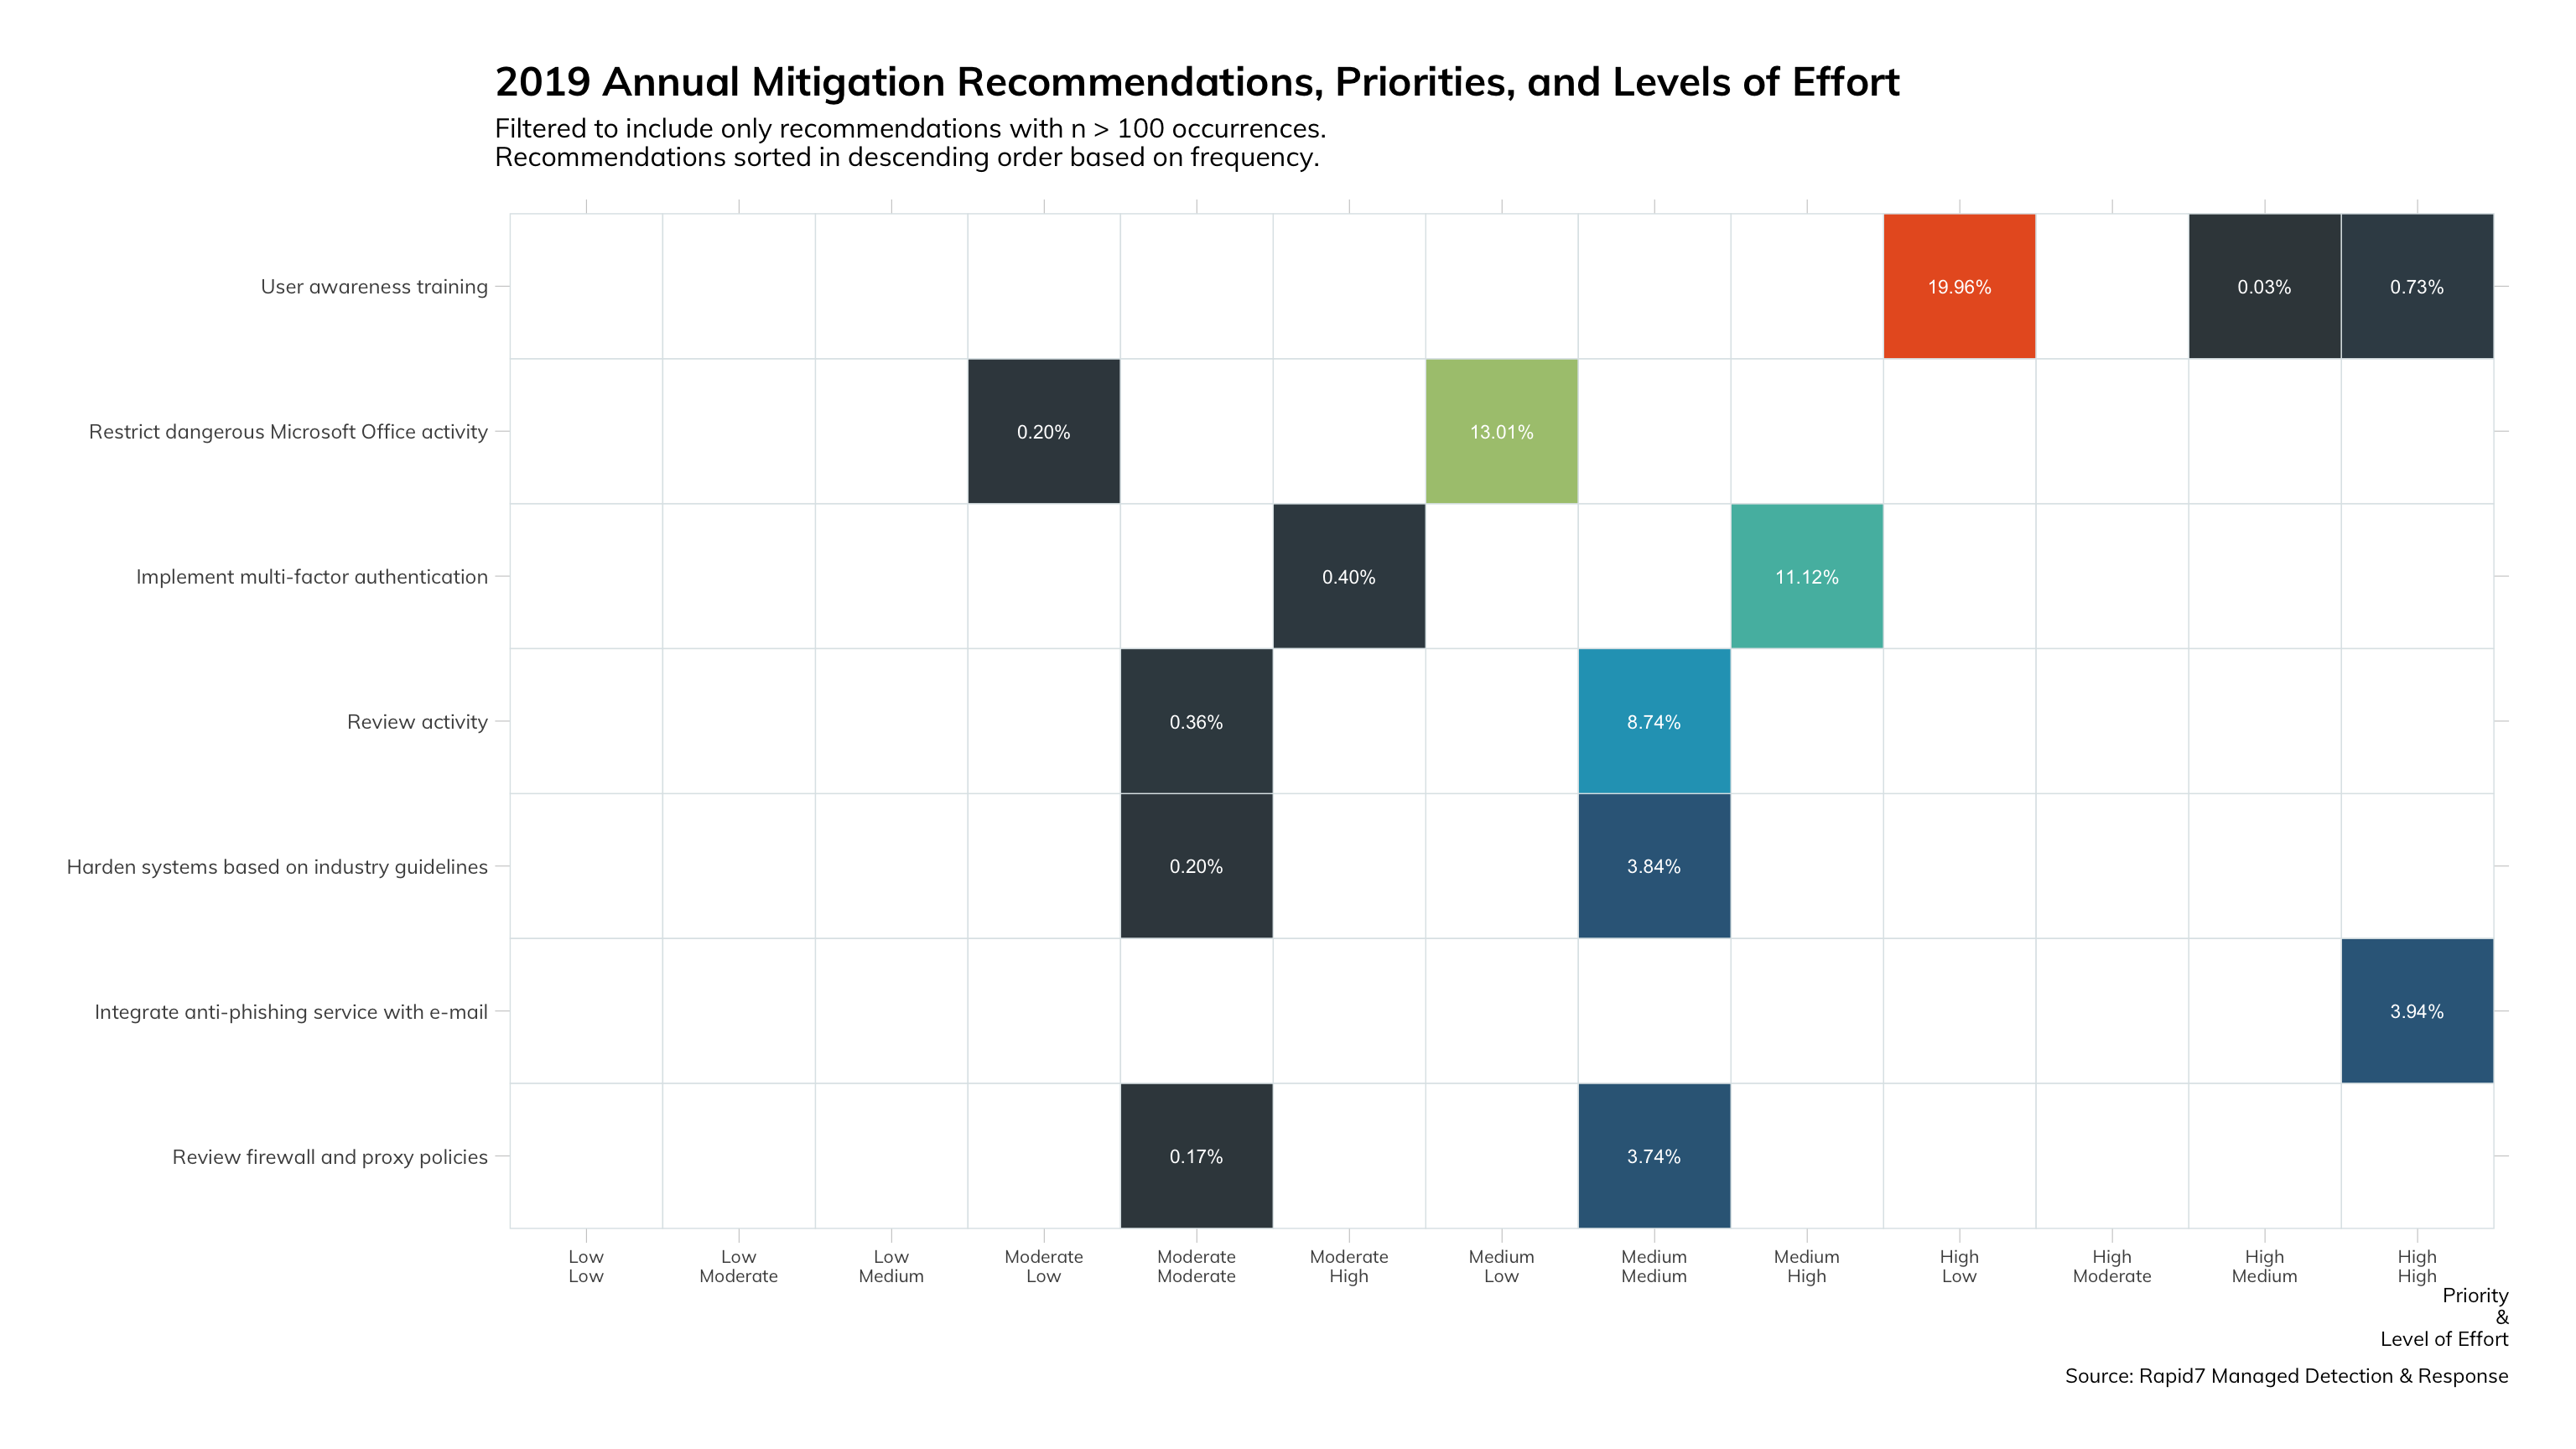 Figure 18: 2019 Annual Mitigation Recommendations, Priorities, and Levels of Effort